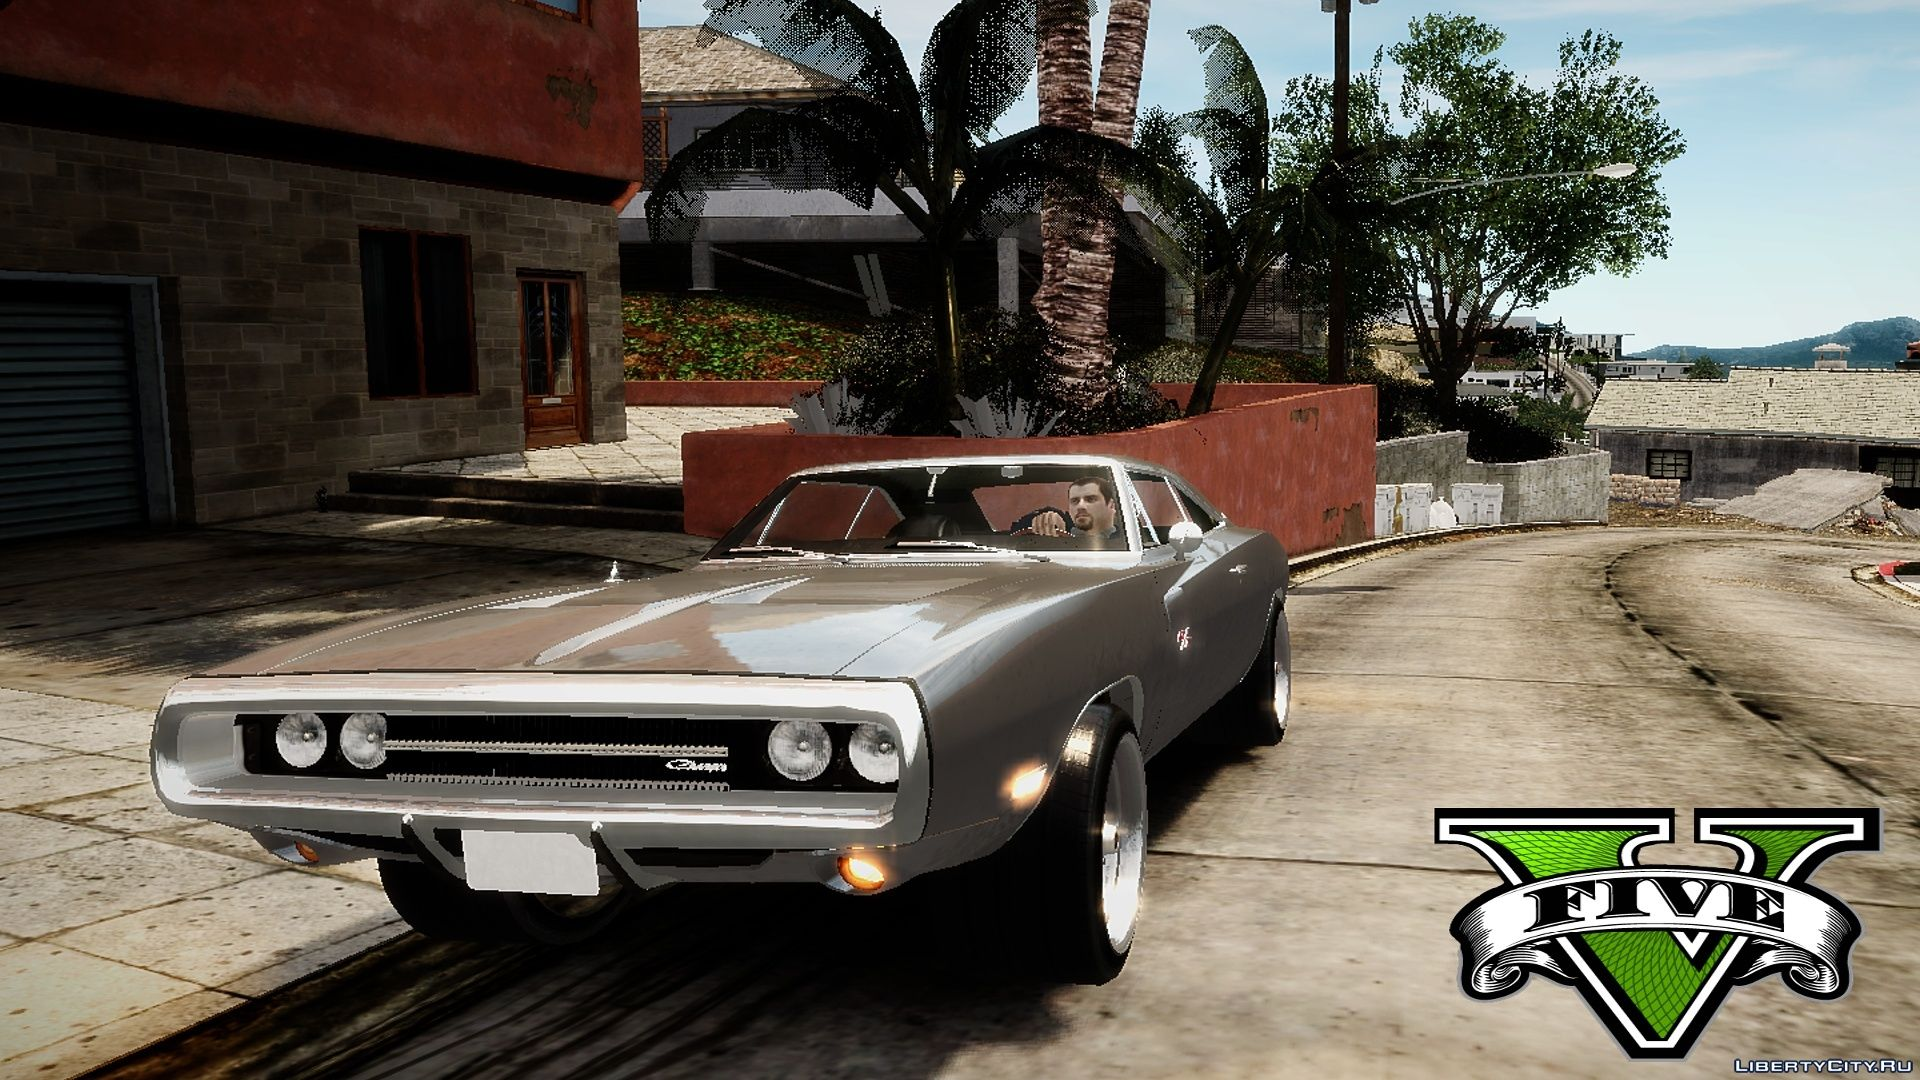 Fast and Furious 7 1970 Dodge Charger Movie car mod v2.0 для GTA 4